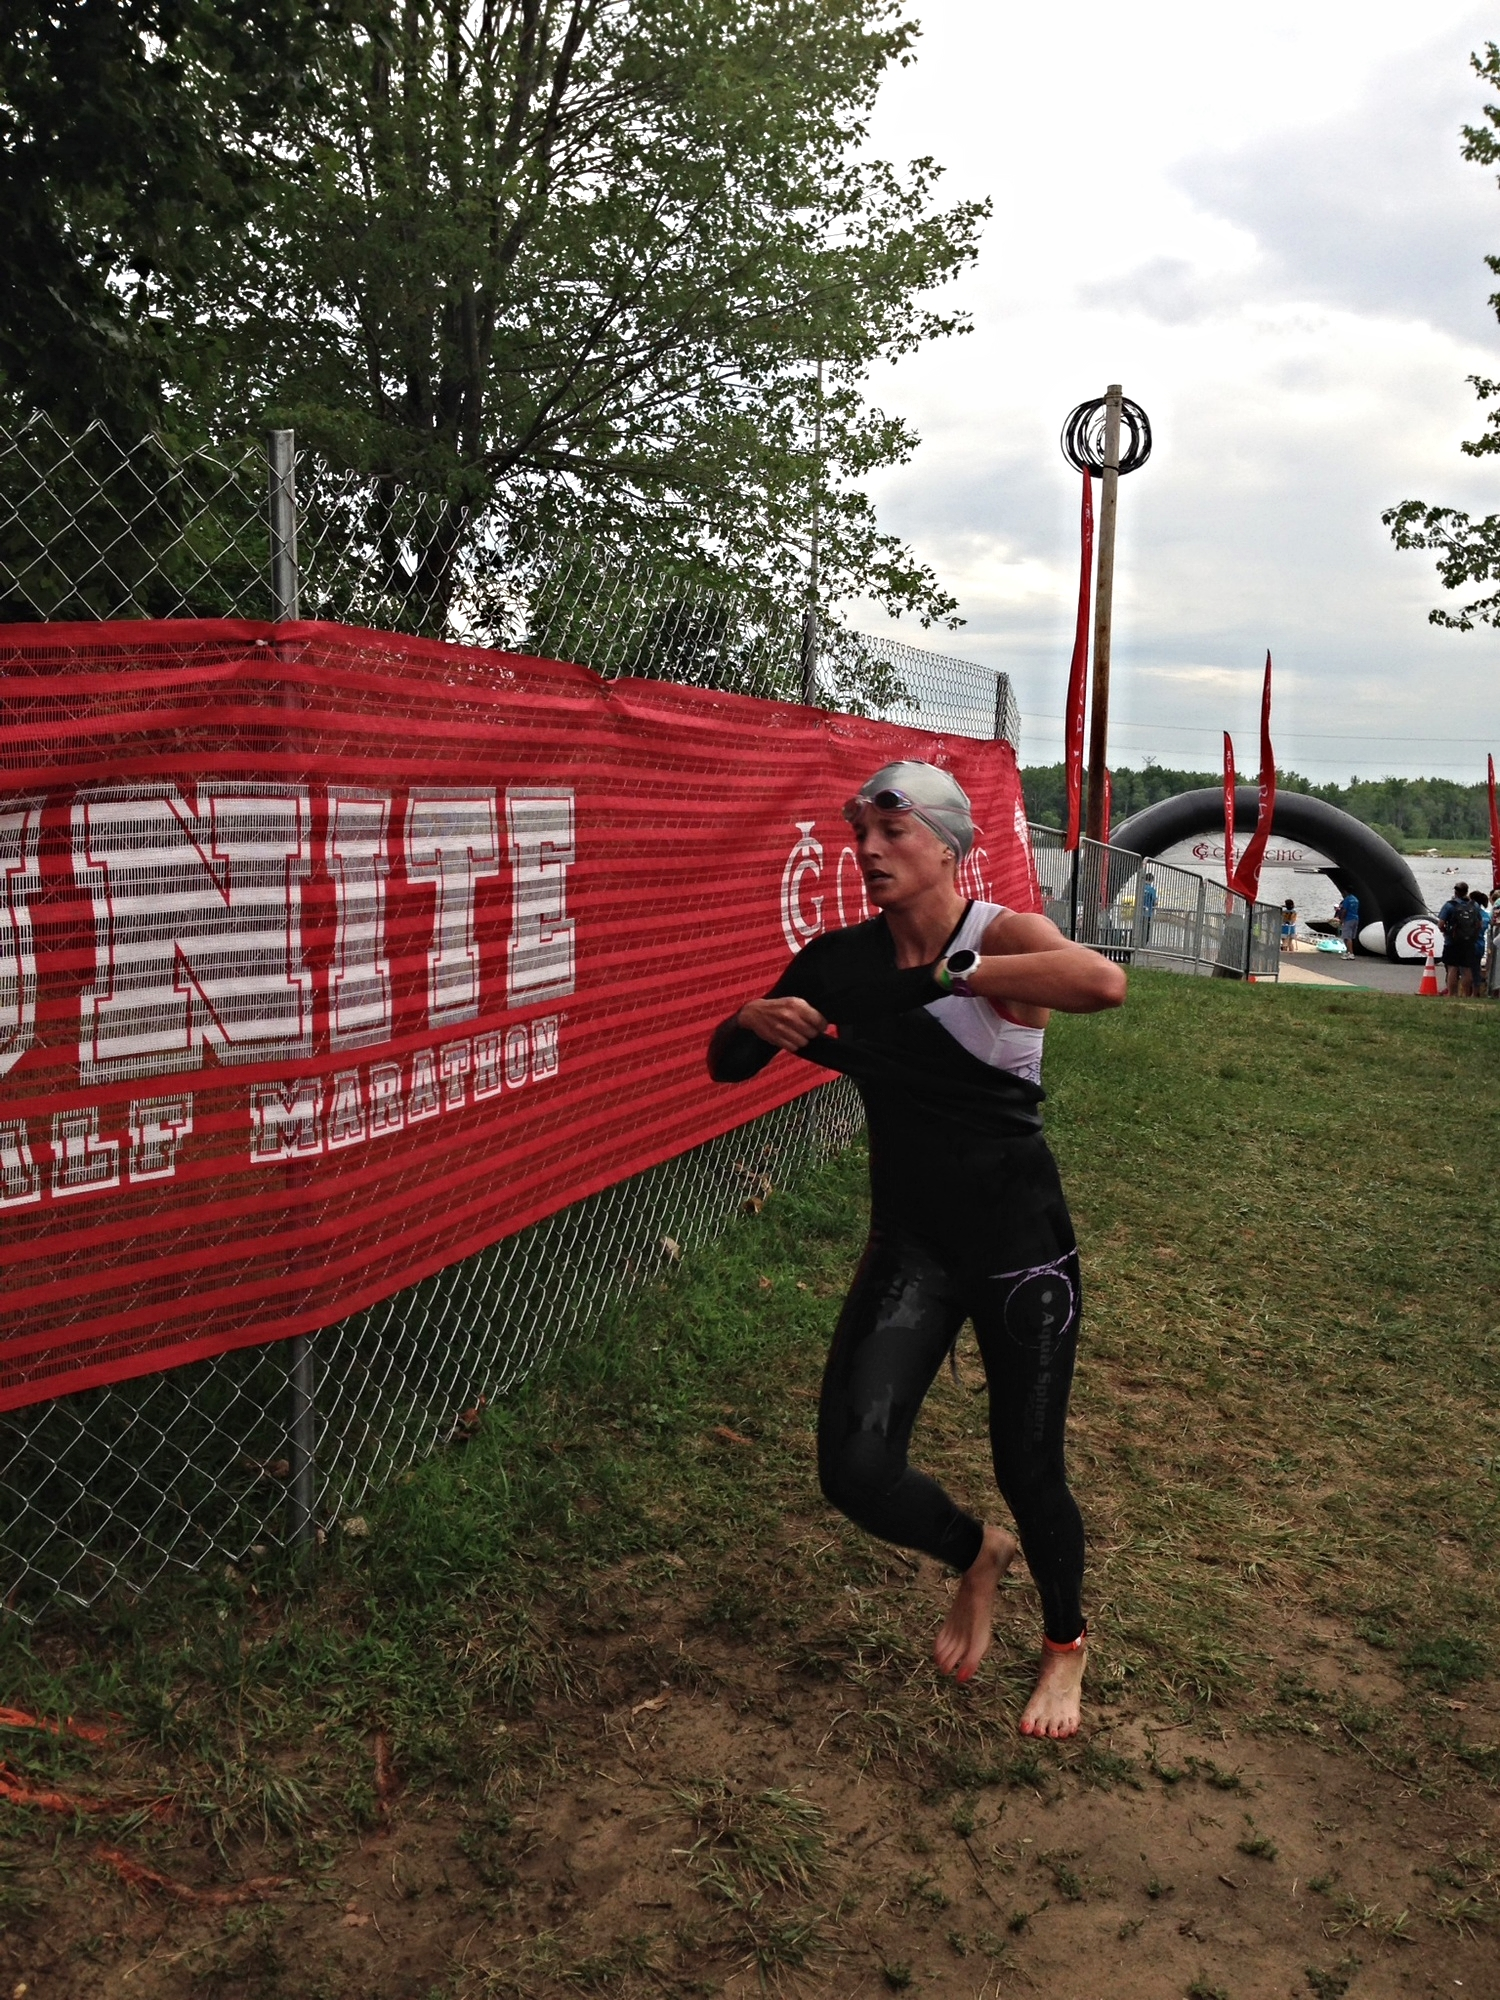 Out of the water with an Olympic Distance Swim personal best of 23:06.